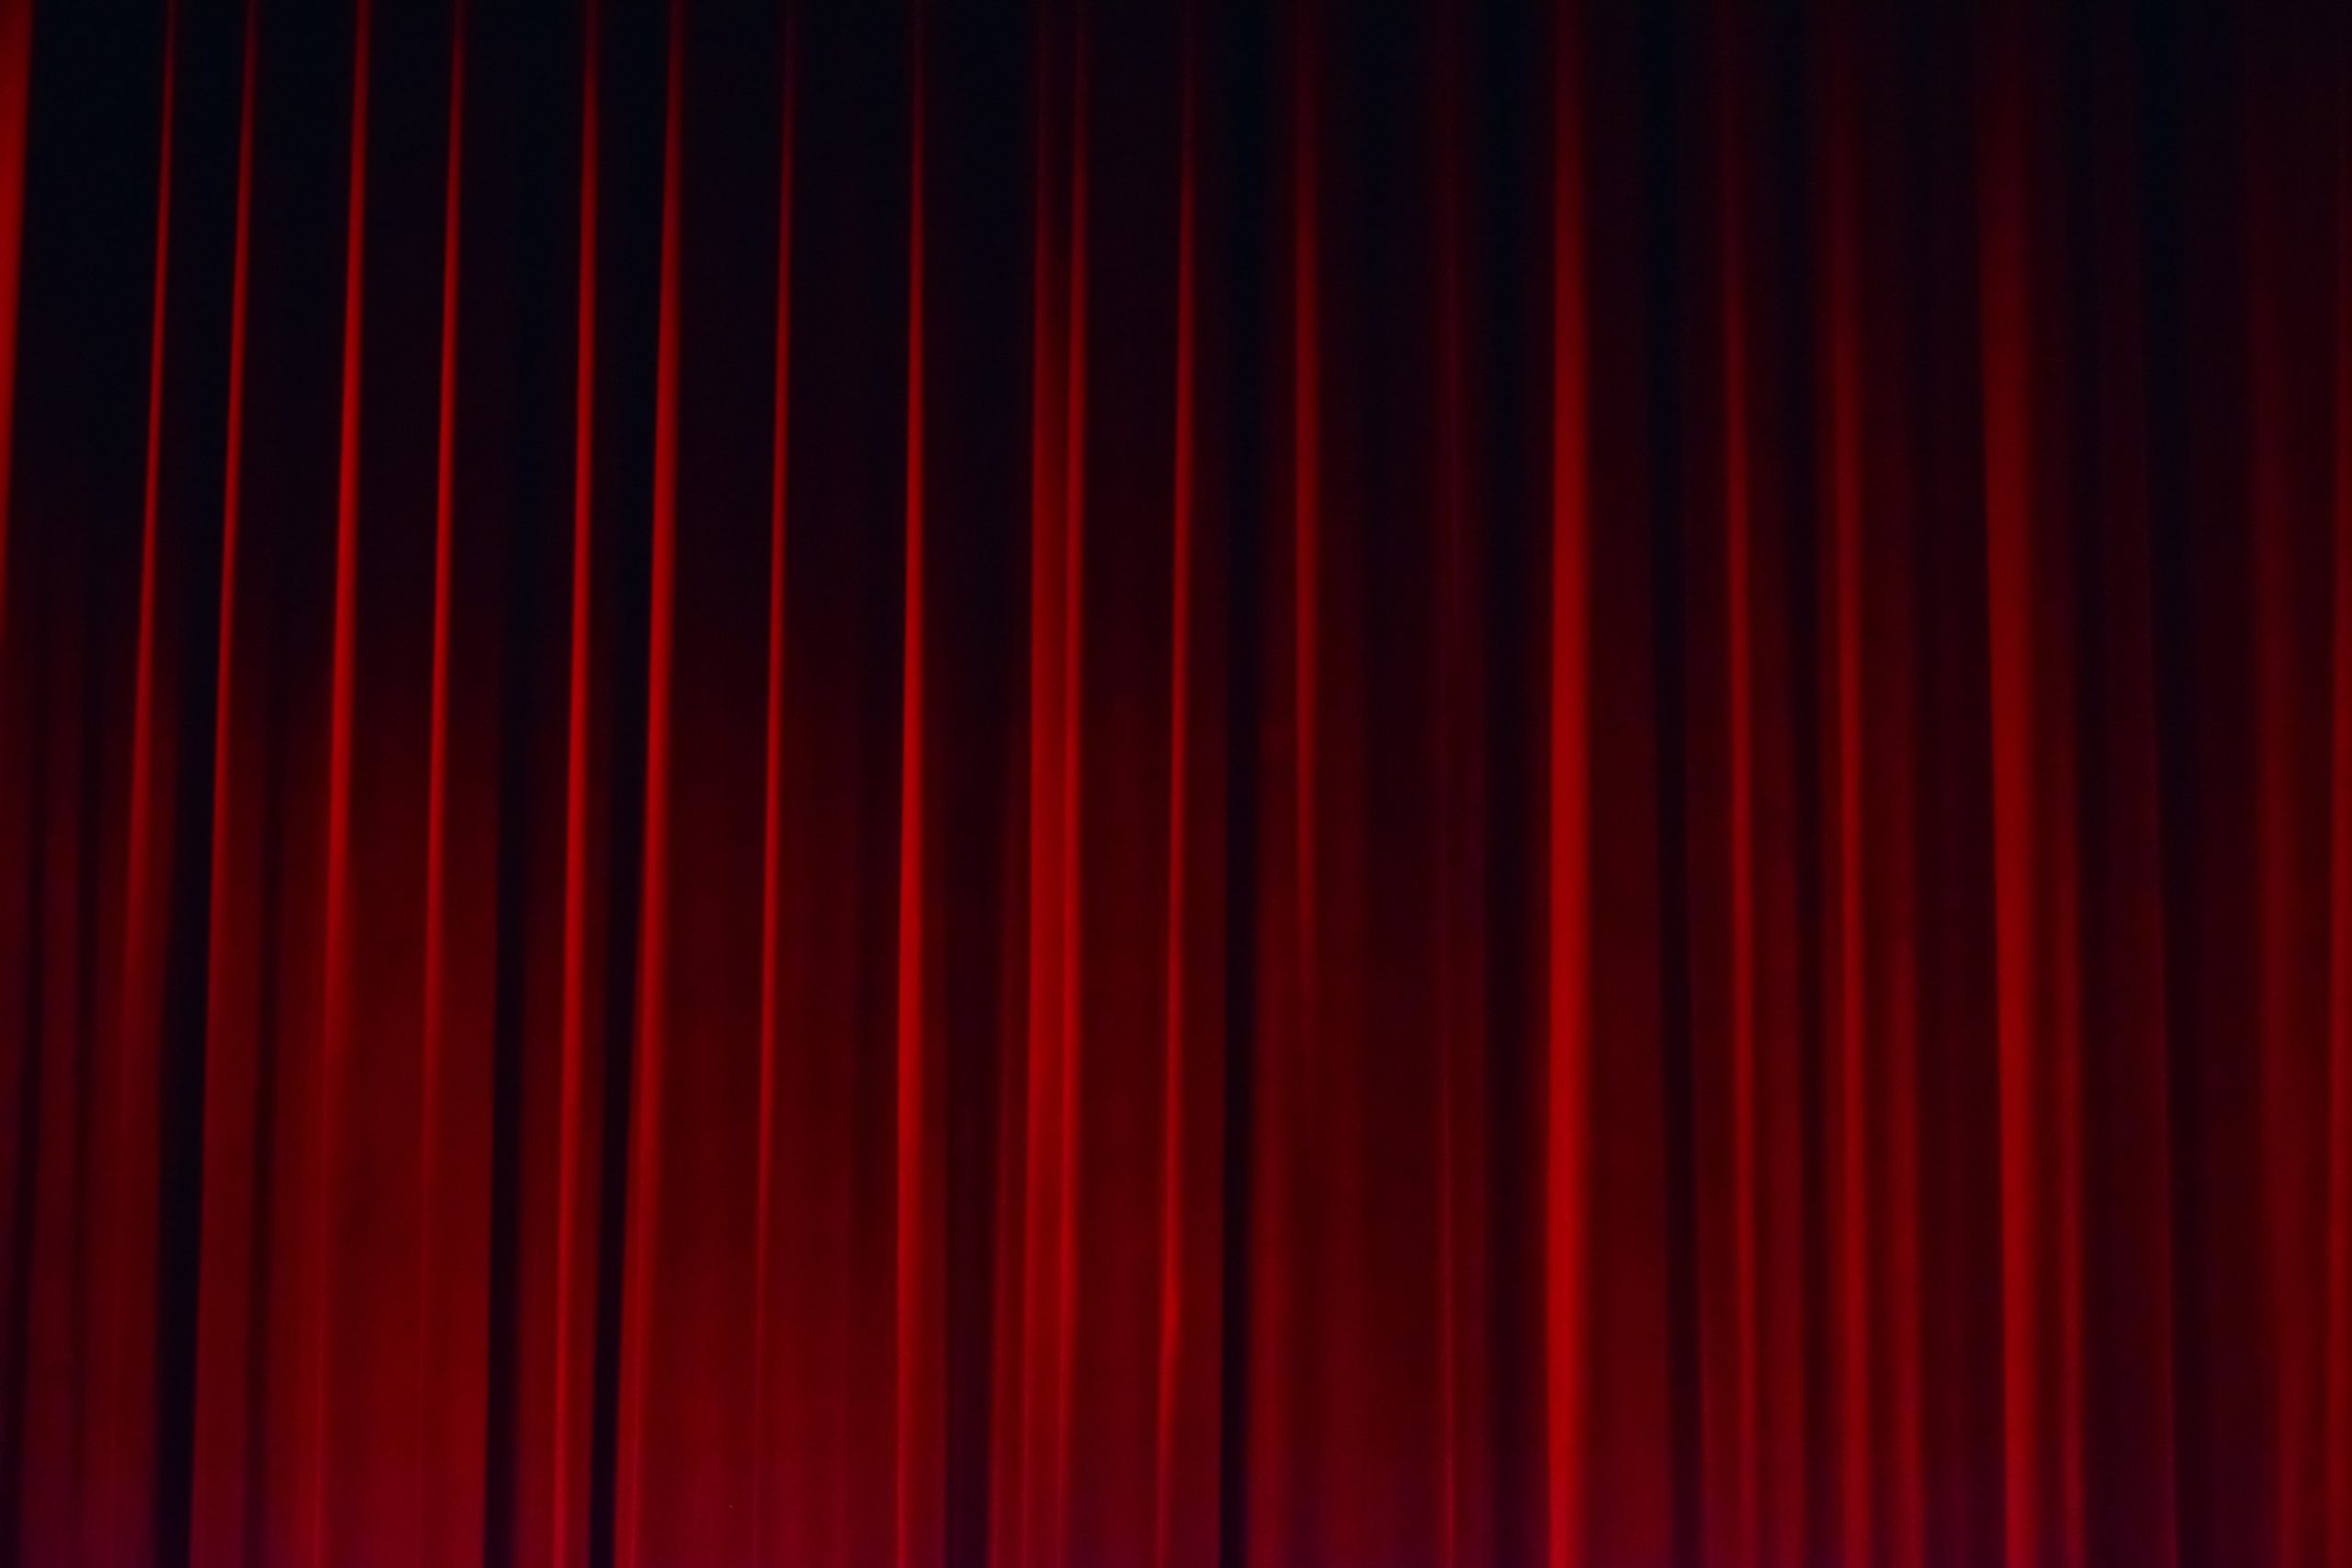 Background red curtain theatre stage